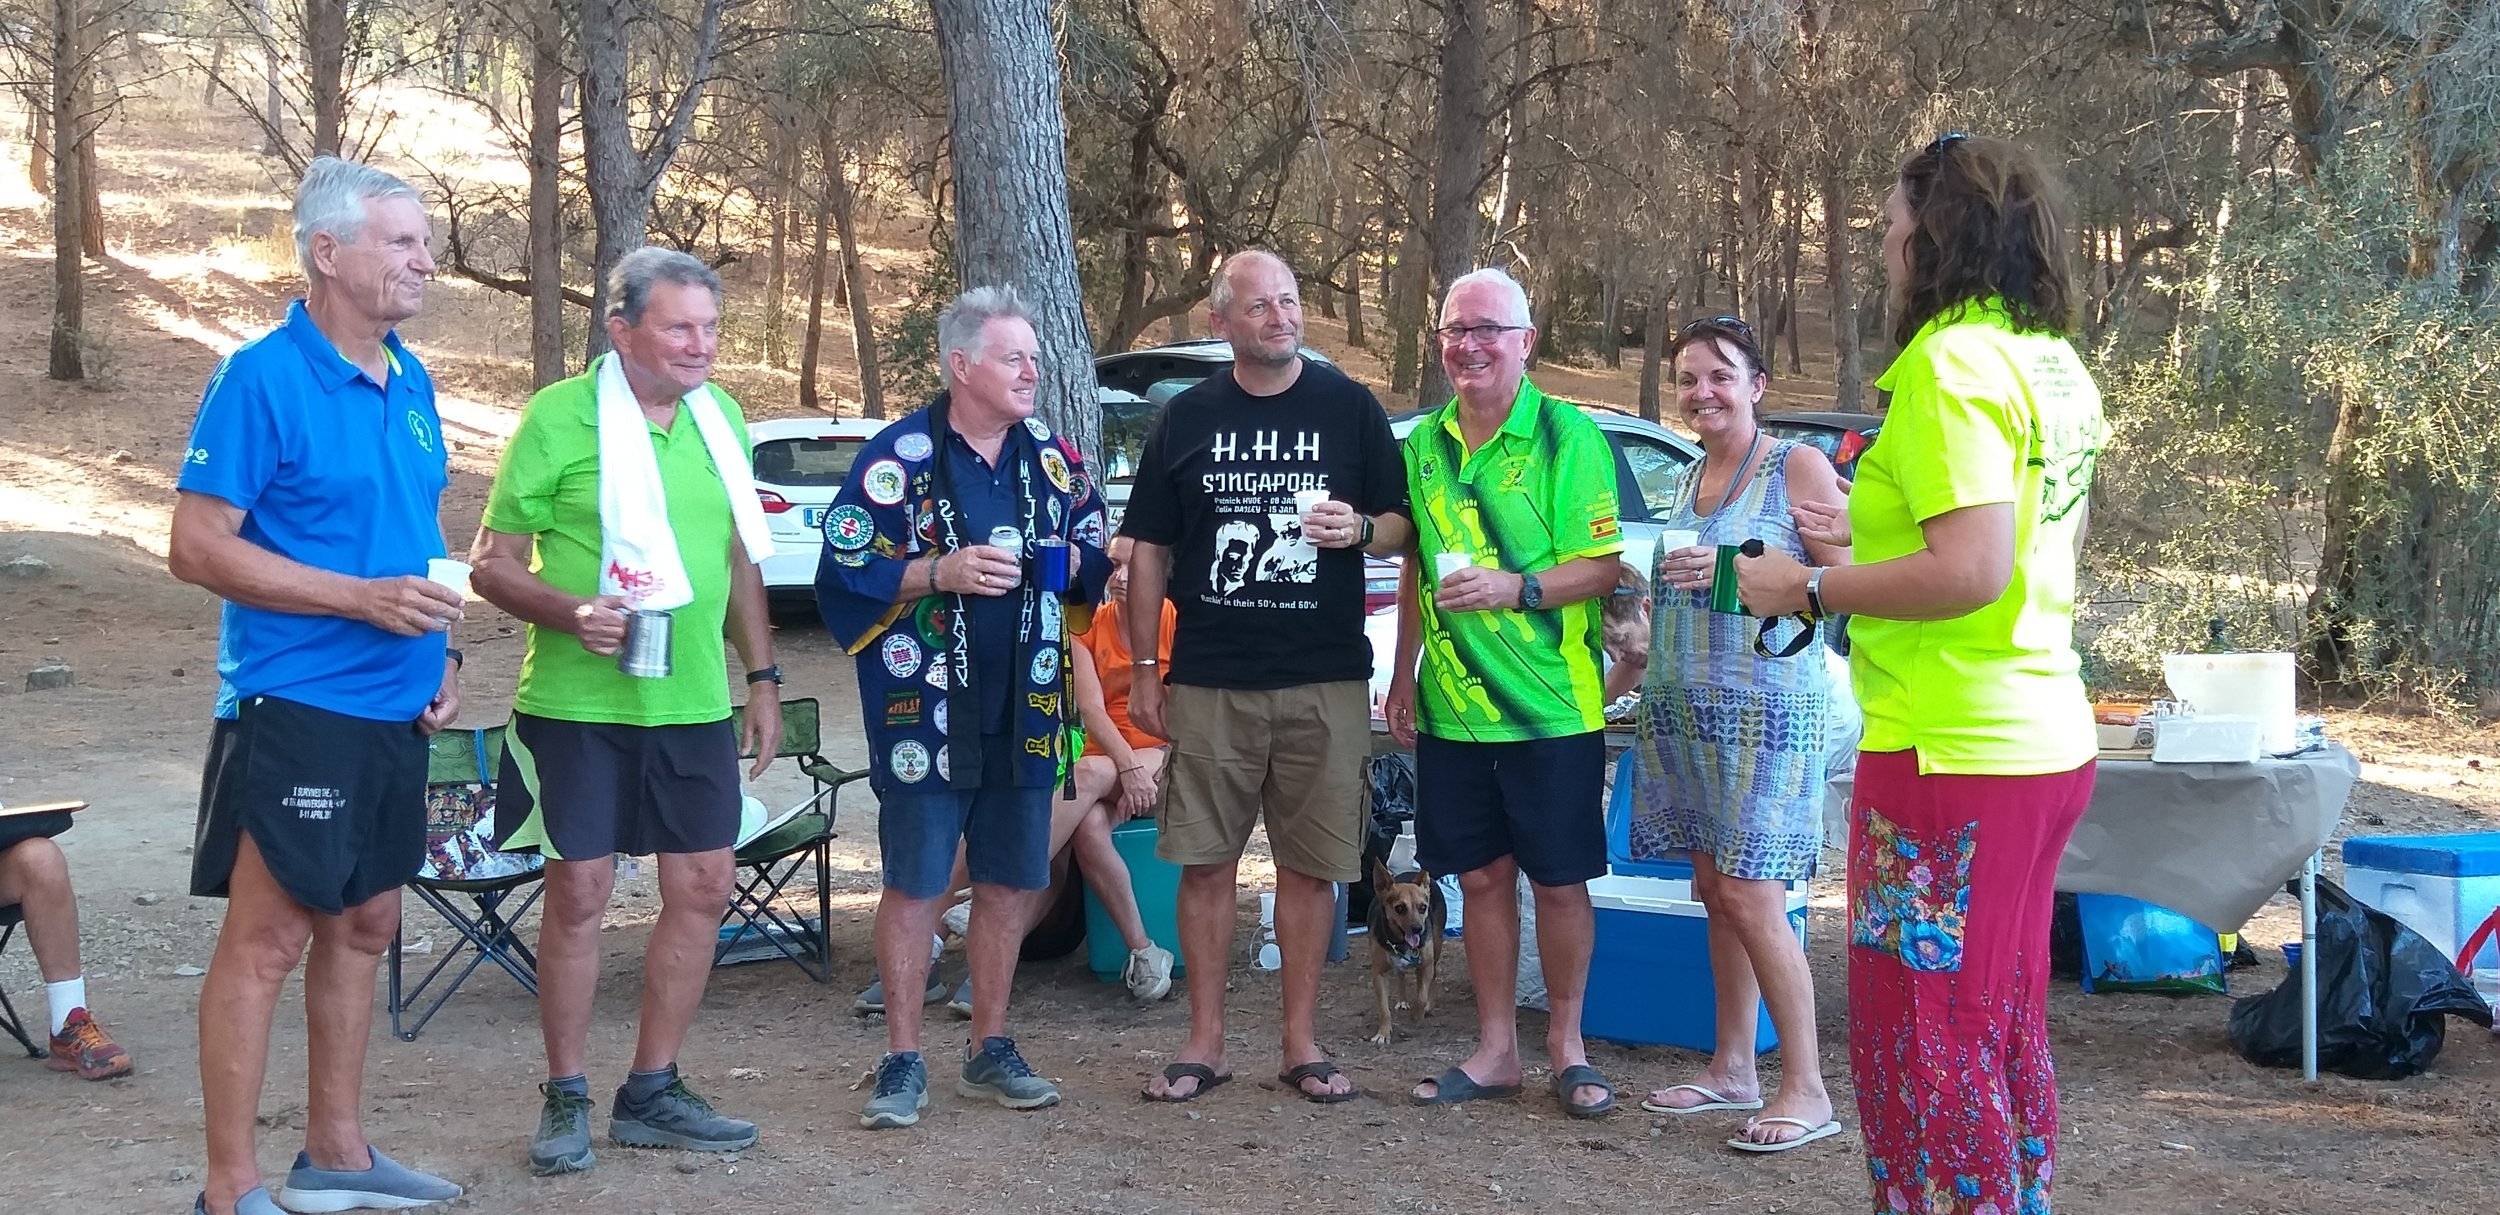 Mijas H3 - Hash Flash GC - Run 1650 - 28 Jul 2019 - Photo  22.jpg